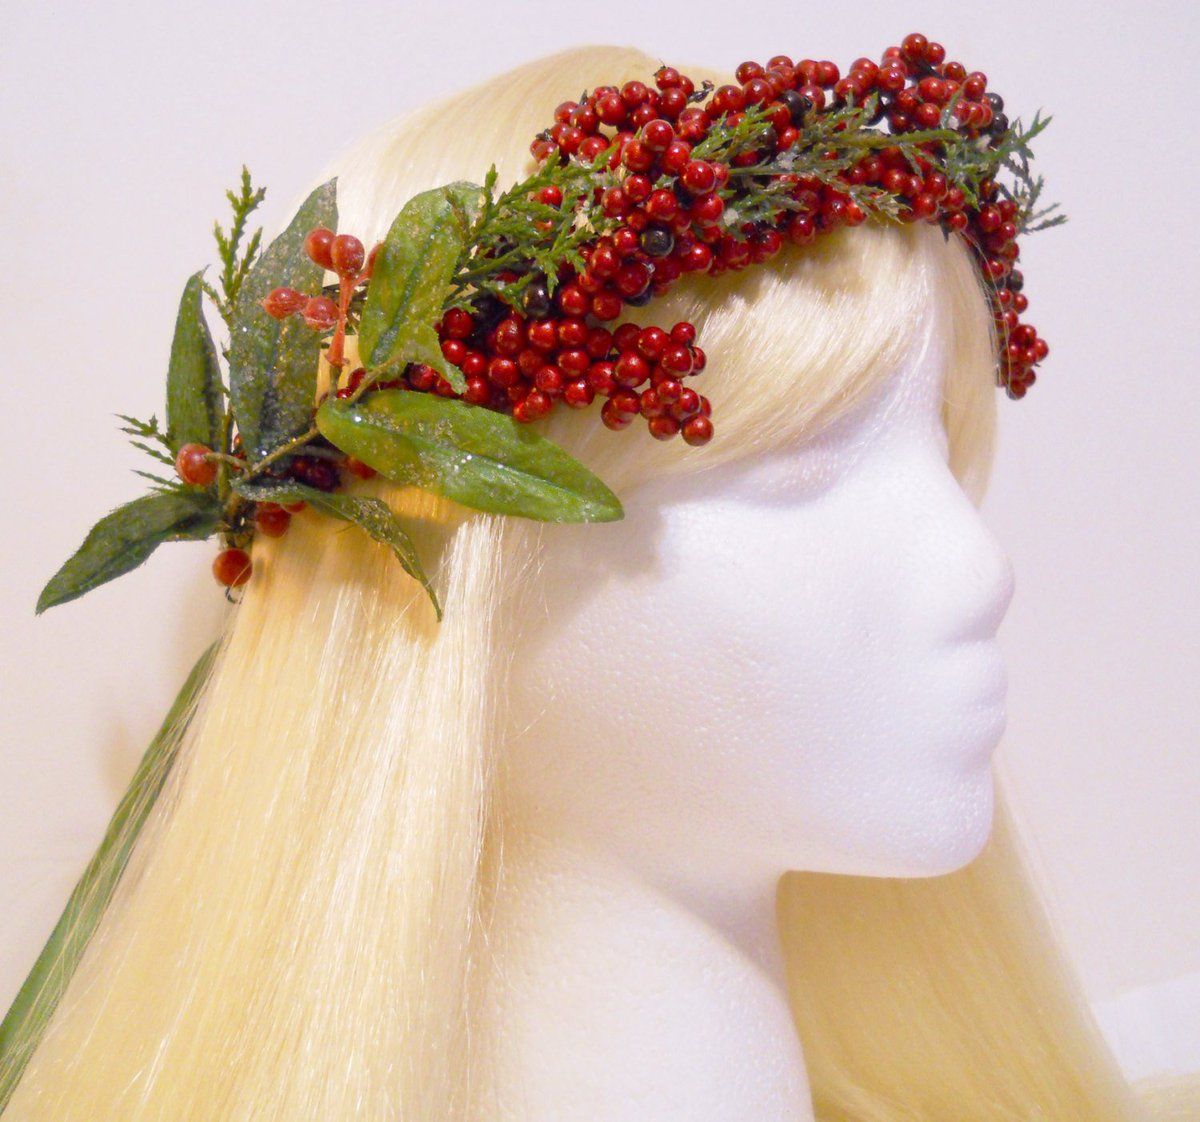 Michele on twitter red berry flower crown head wreath frozen christmas winter weddings flower girl snow crystal ice red green mistletoe berries holiday party httptuppuc1f00395 prom queen flowercrown izmirmasajfo